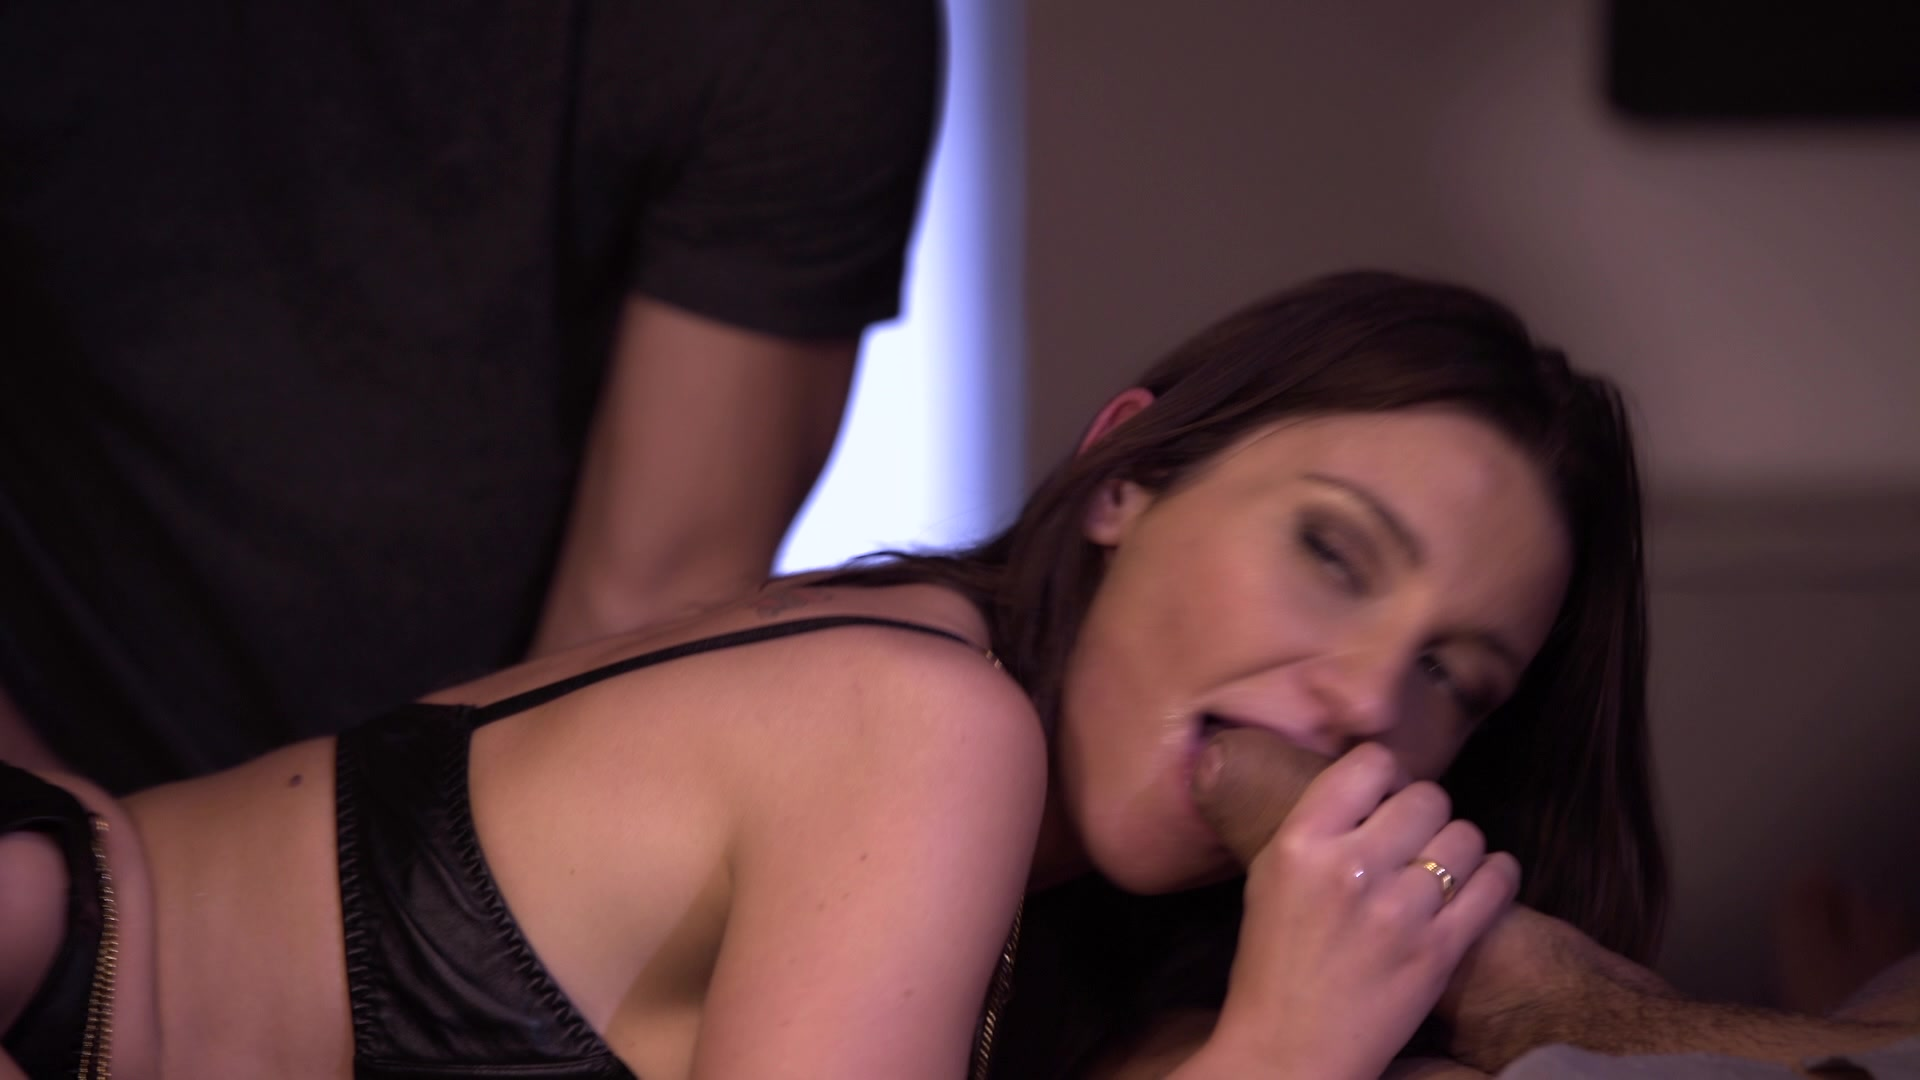 Scene with Julie Skyhigh - image 14 out of 20